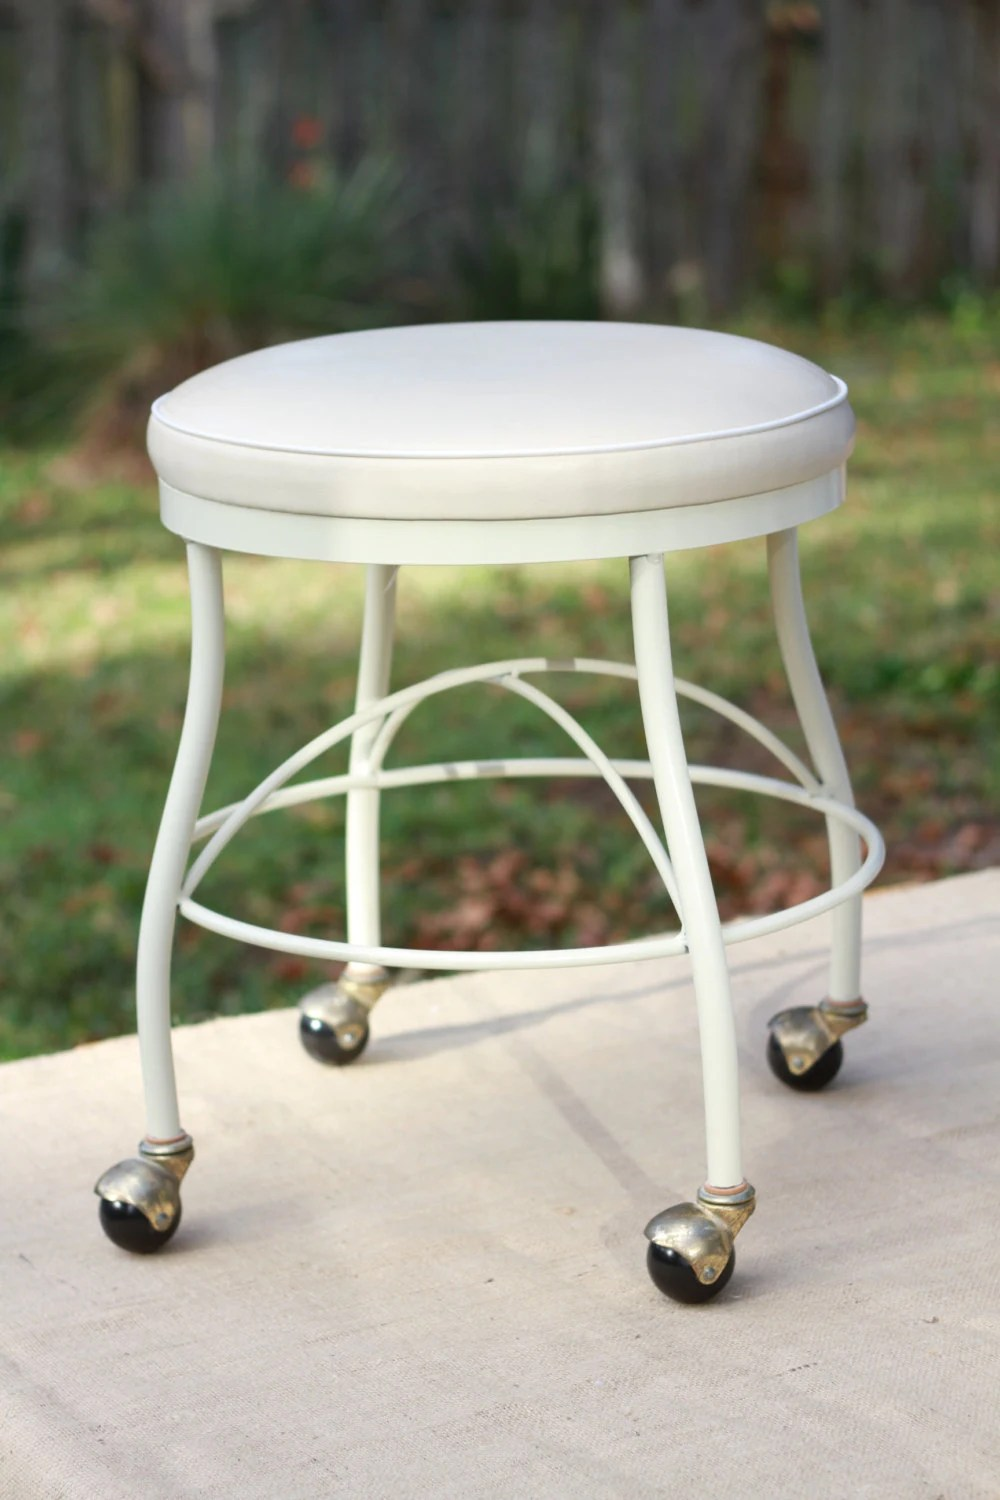 Vinyl vanity stool with rollng casters haute juice - Bathroom vanity chair with casters ...